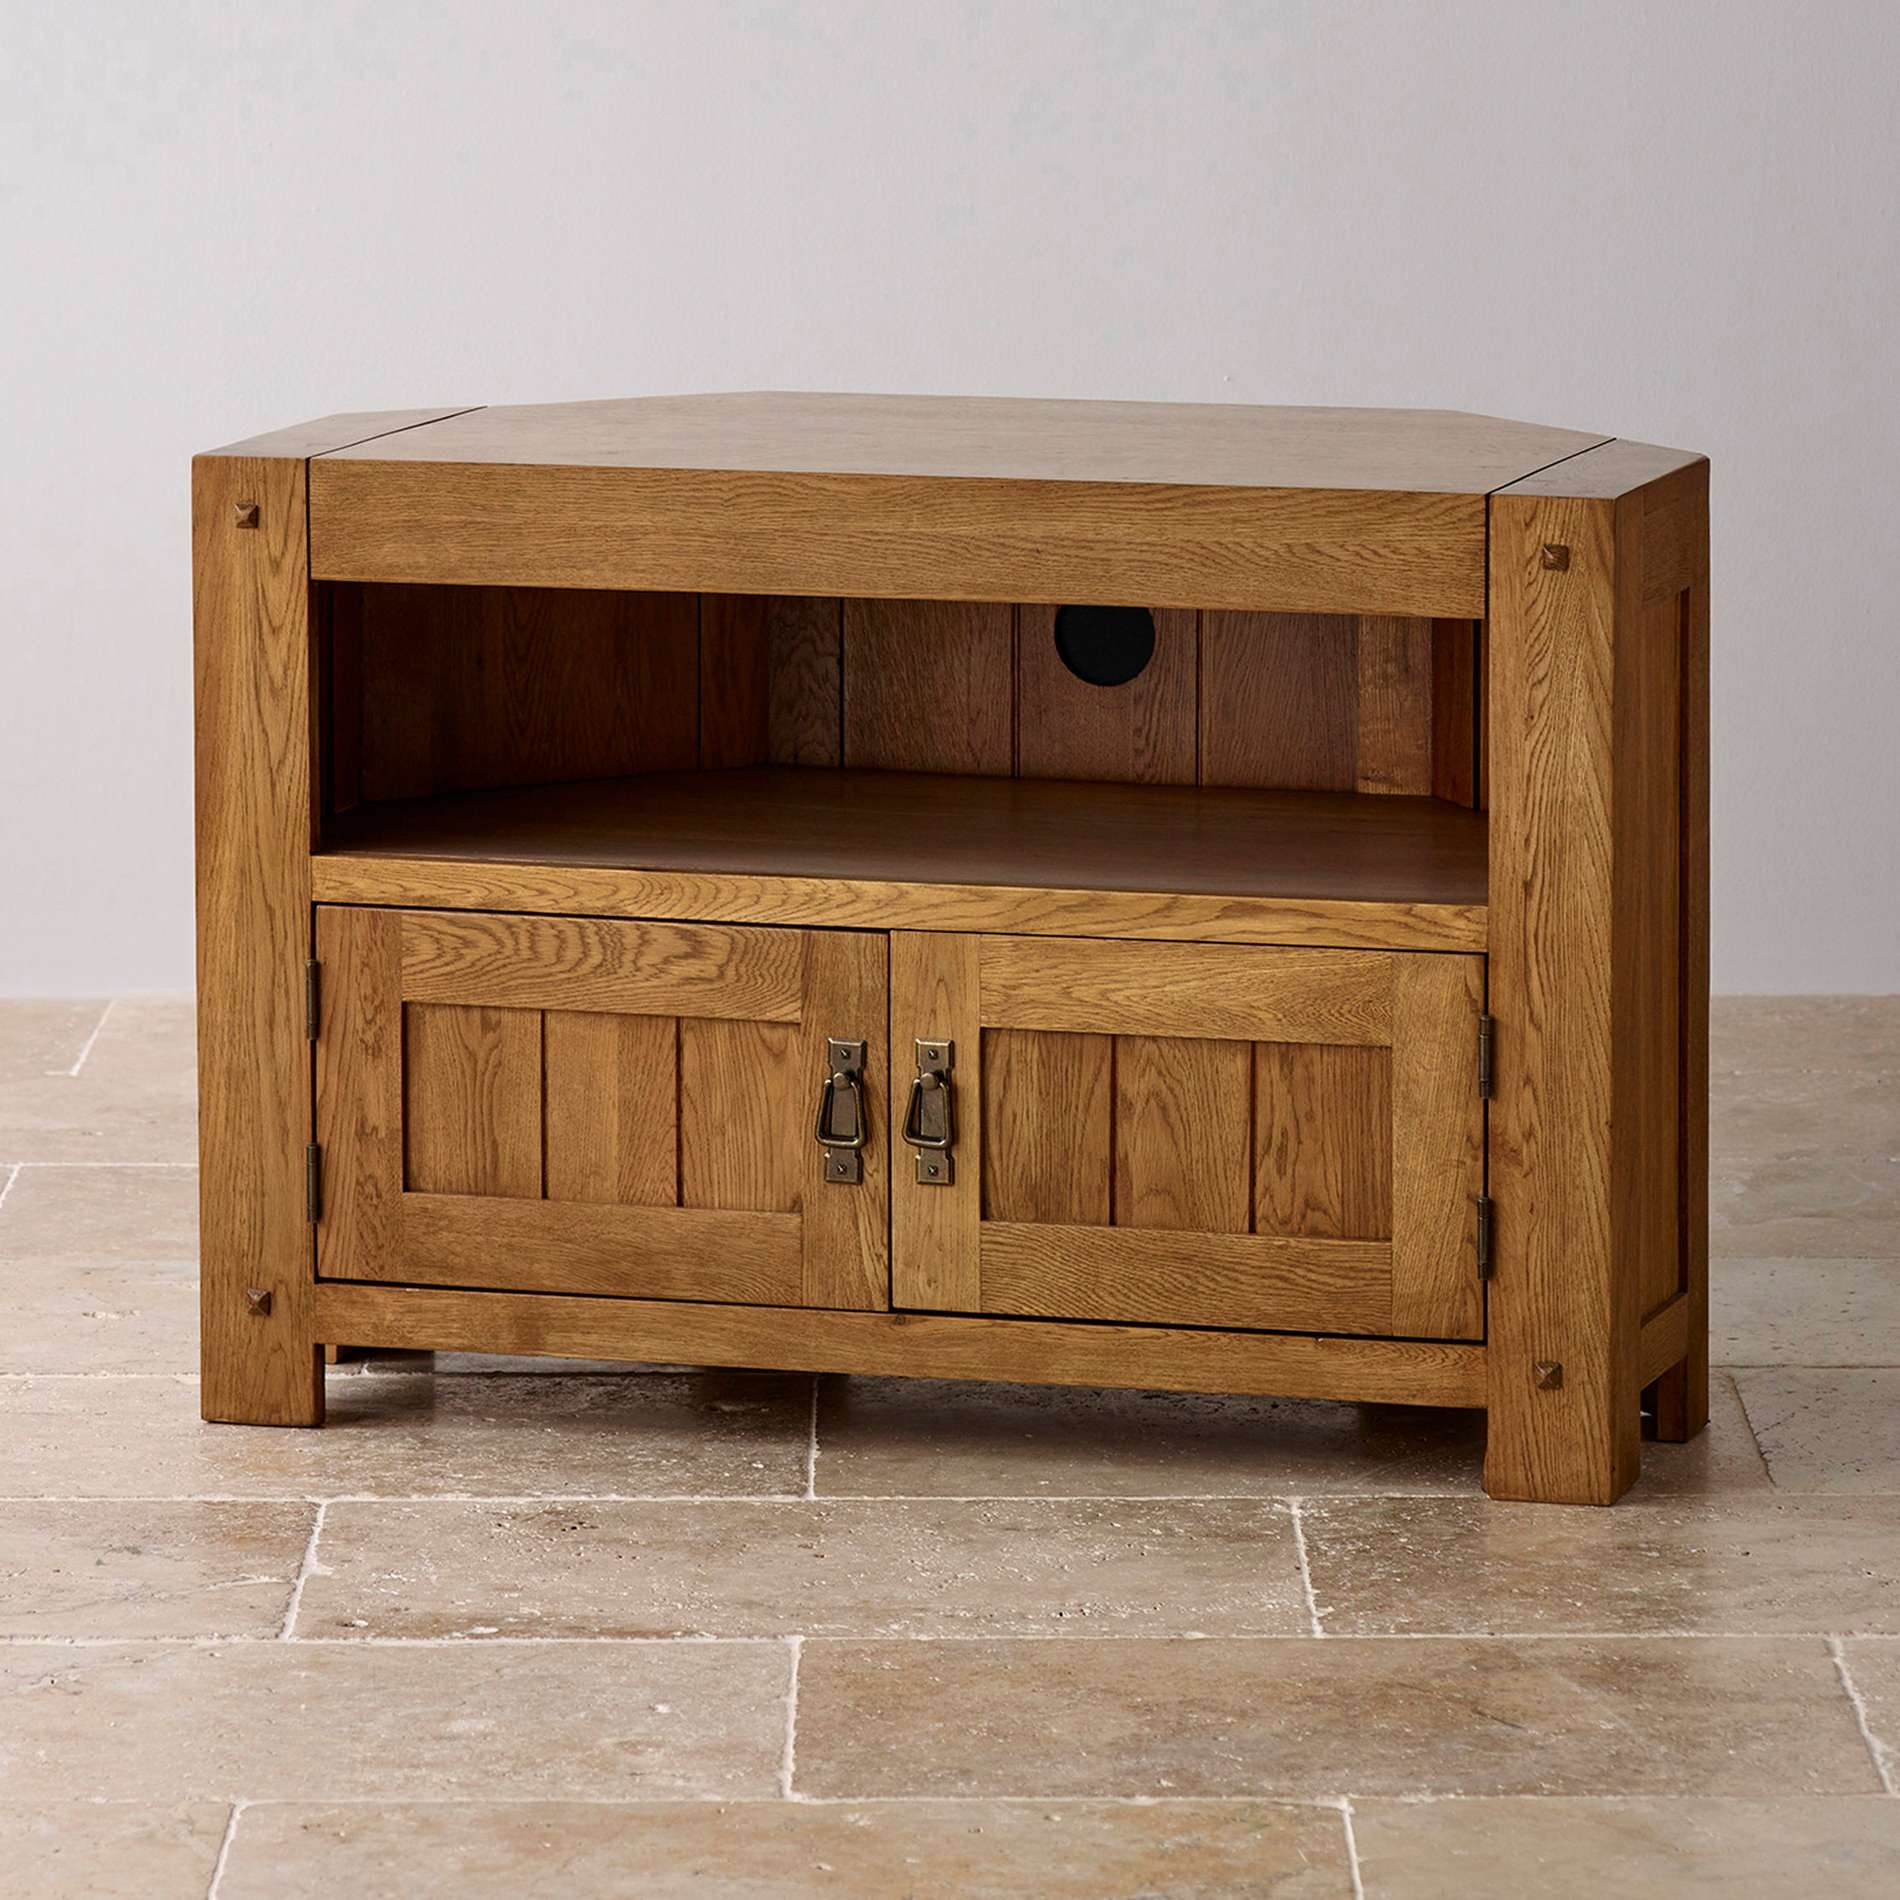 Inspirational Rustic Corner Tv Stand 44 About Remodel Small Home For Rustic Oak Tv Stands (View 5 of 15)